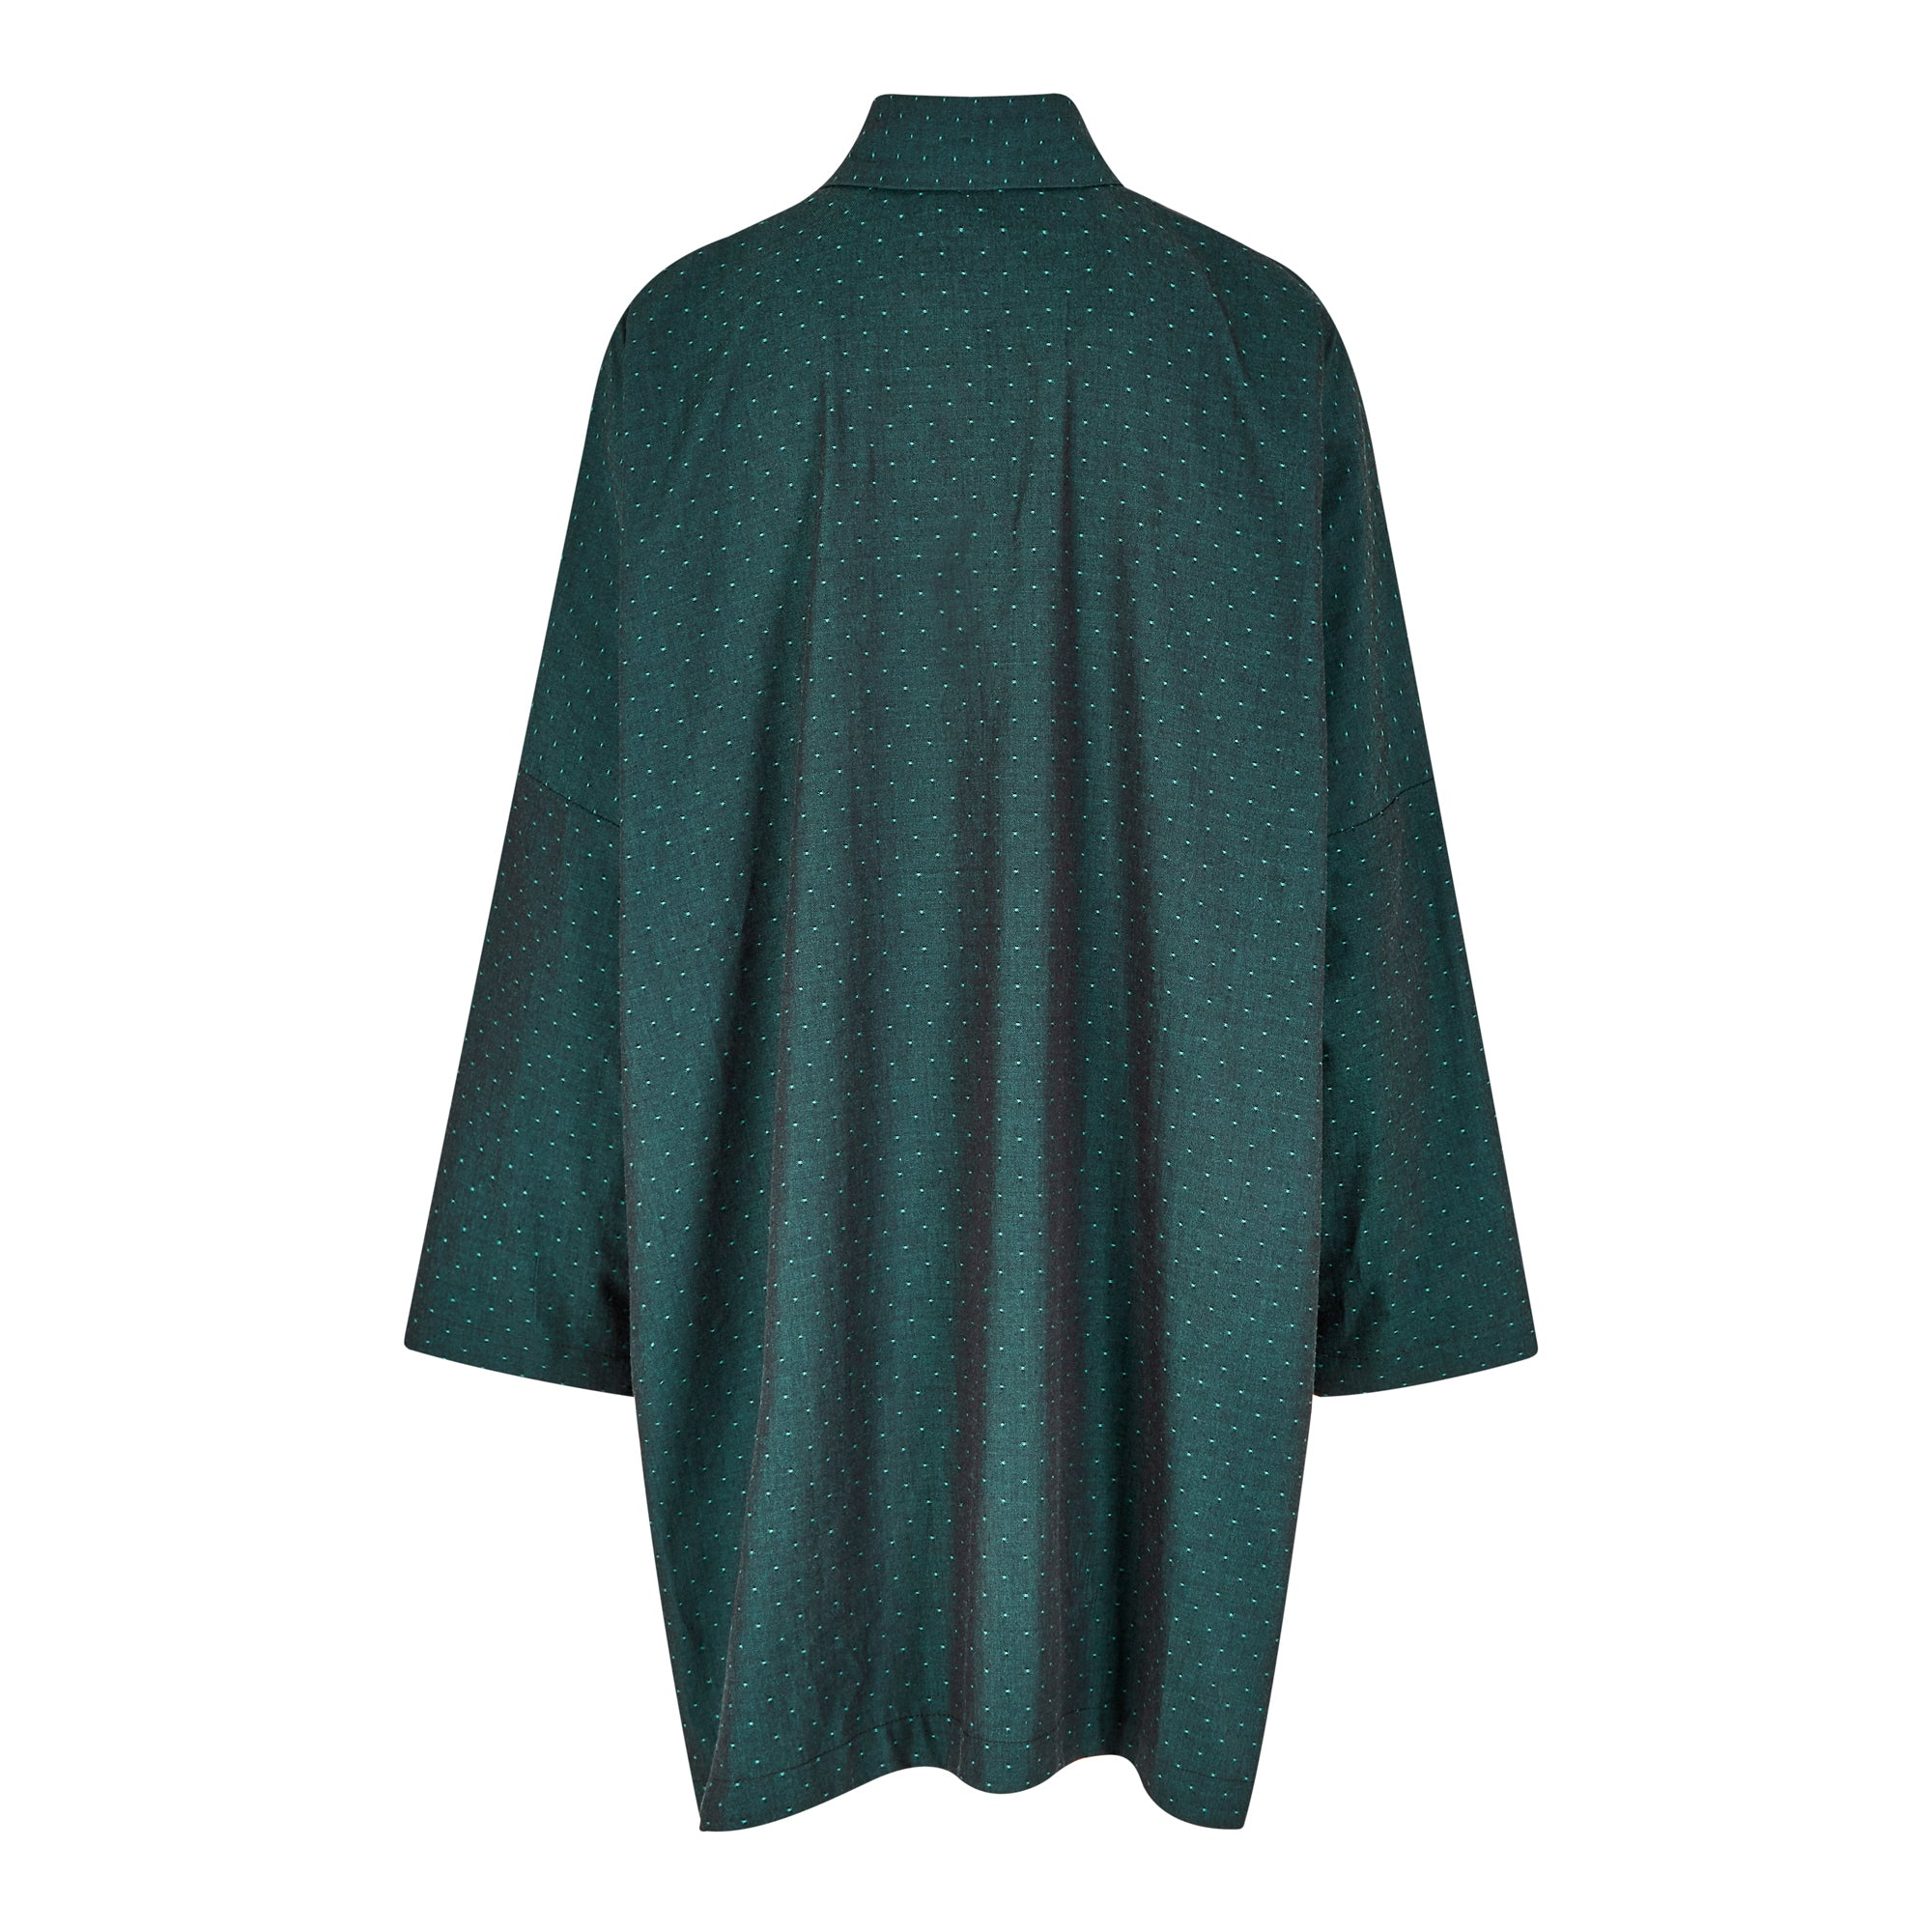 EMERALD DOT ORGANIC CHAMBRAY LONGER OVERSIZED SHIRT